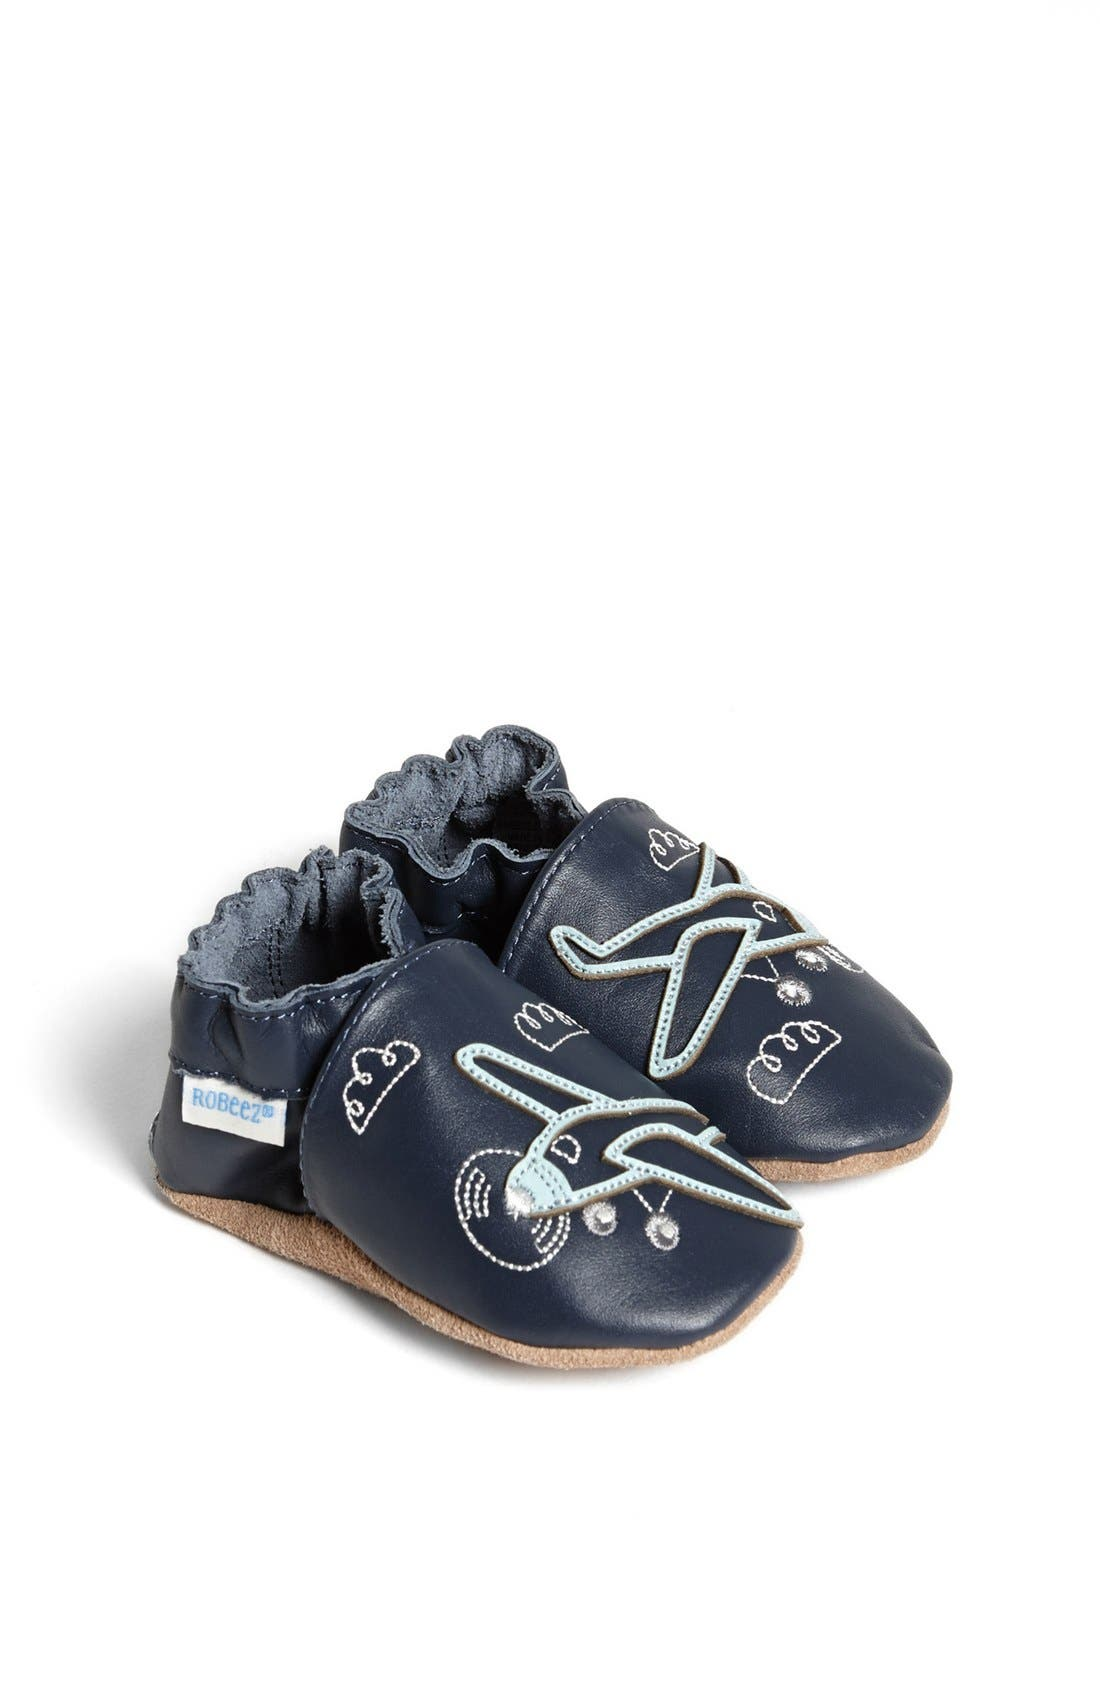 Alternate Image 1 Selected - Robeez® 'Flying High' Crib Shoe (Baby & Walker)